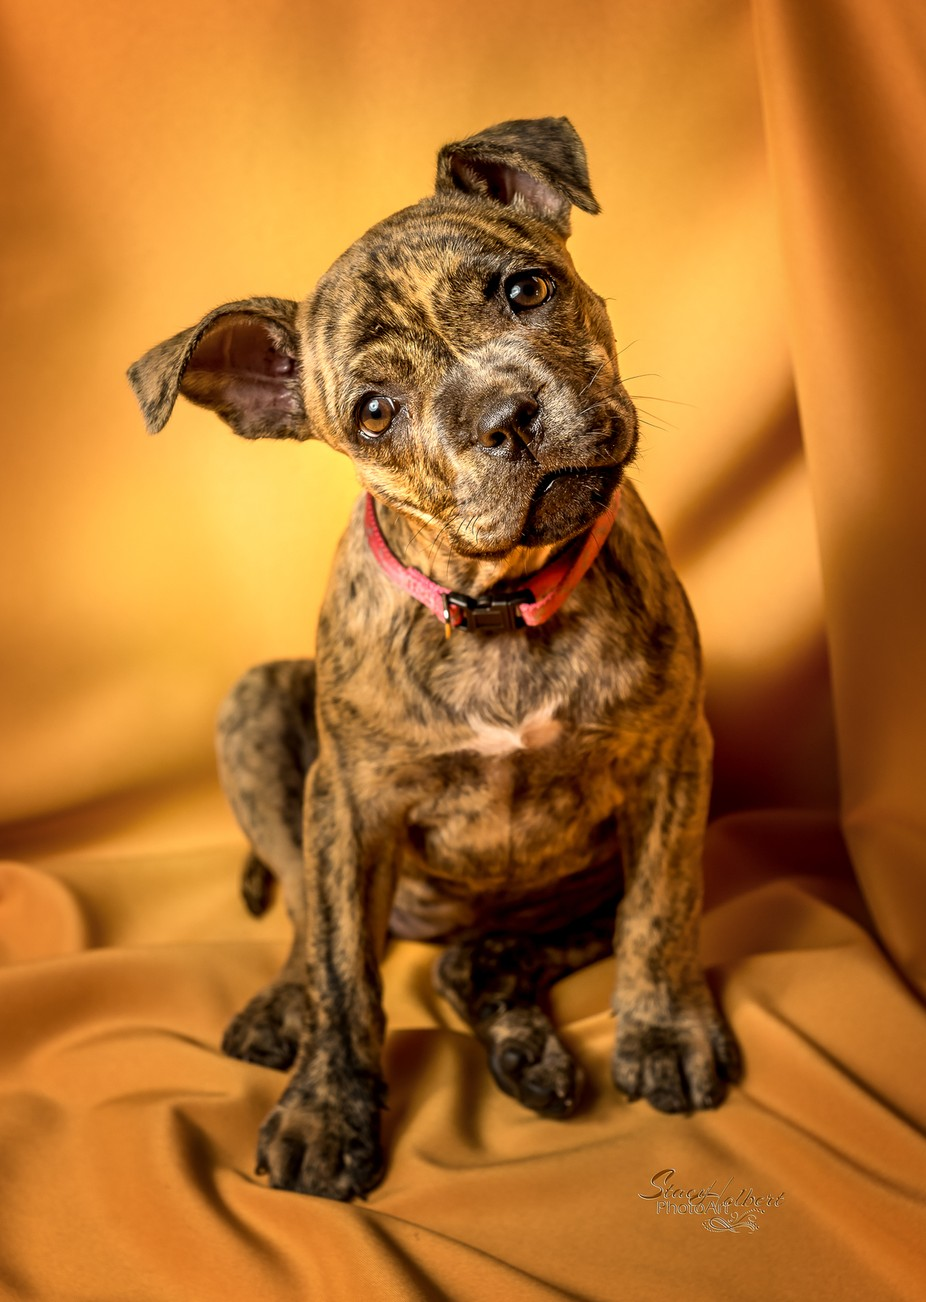 Pitbull puppy by sjholbert - Kittens vs Puppies Photo Contest